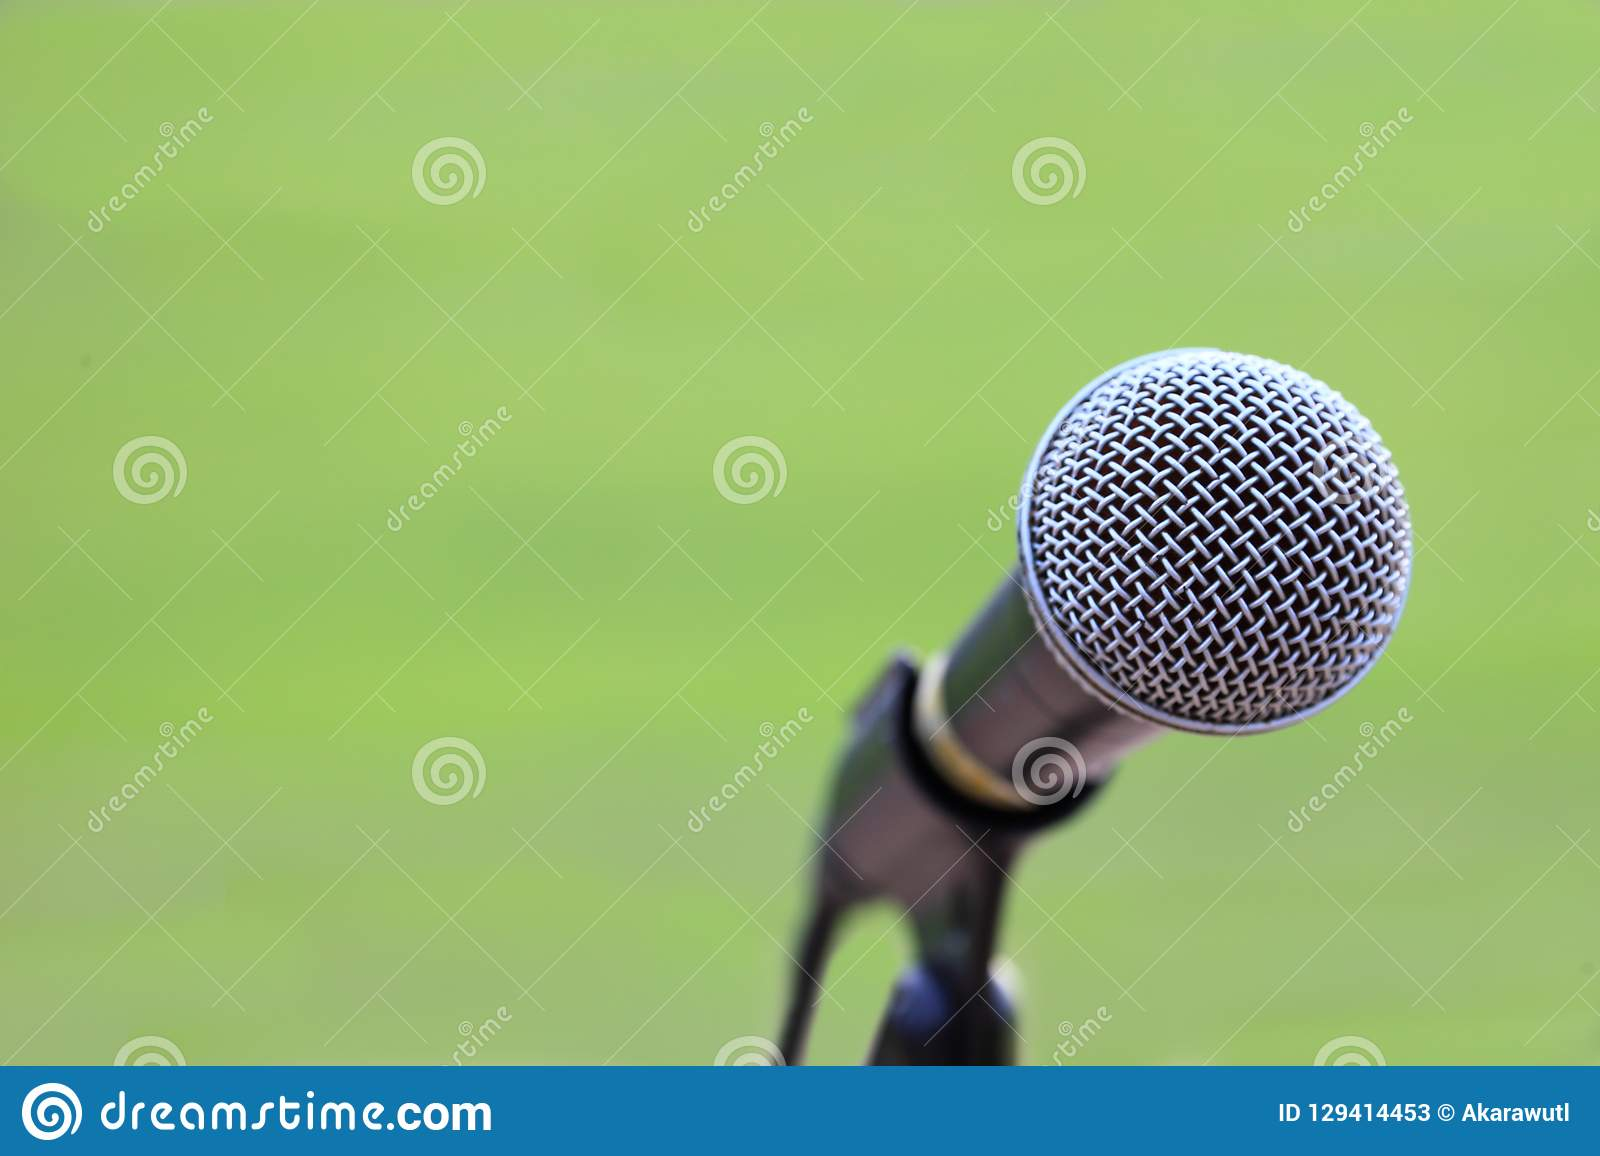 microphone stand on the grass field for announcing for outdoor sport and announcement concept design with copy space